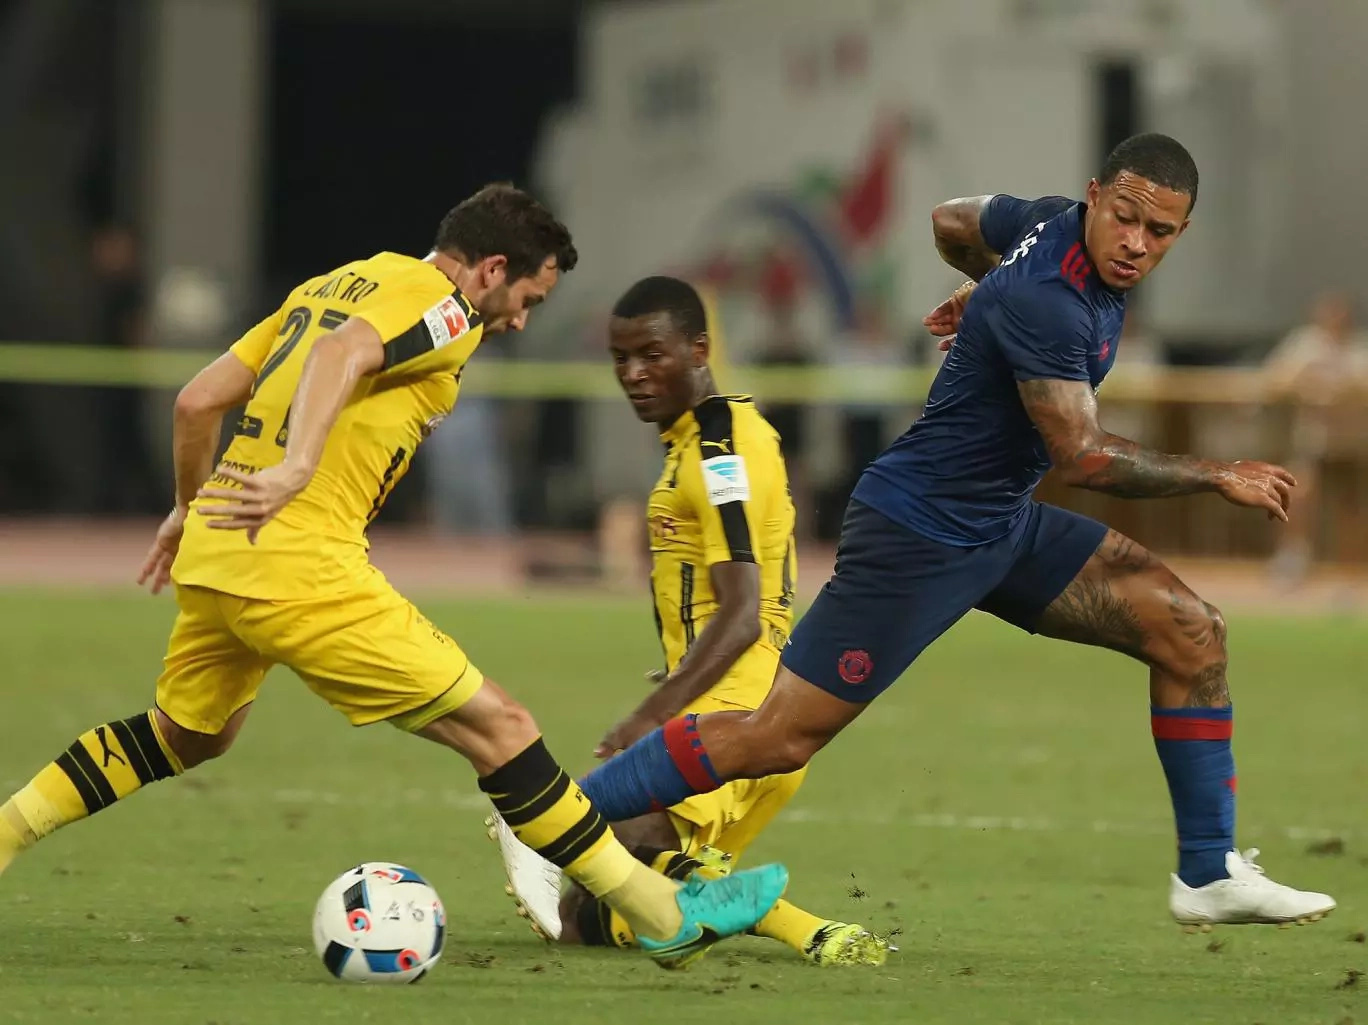 Manchester United beaten badly by Borussia Dortmund